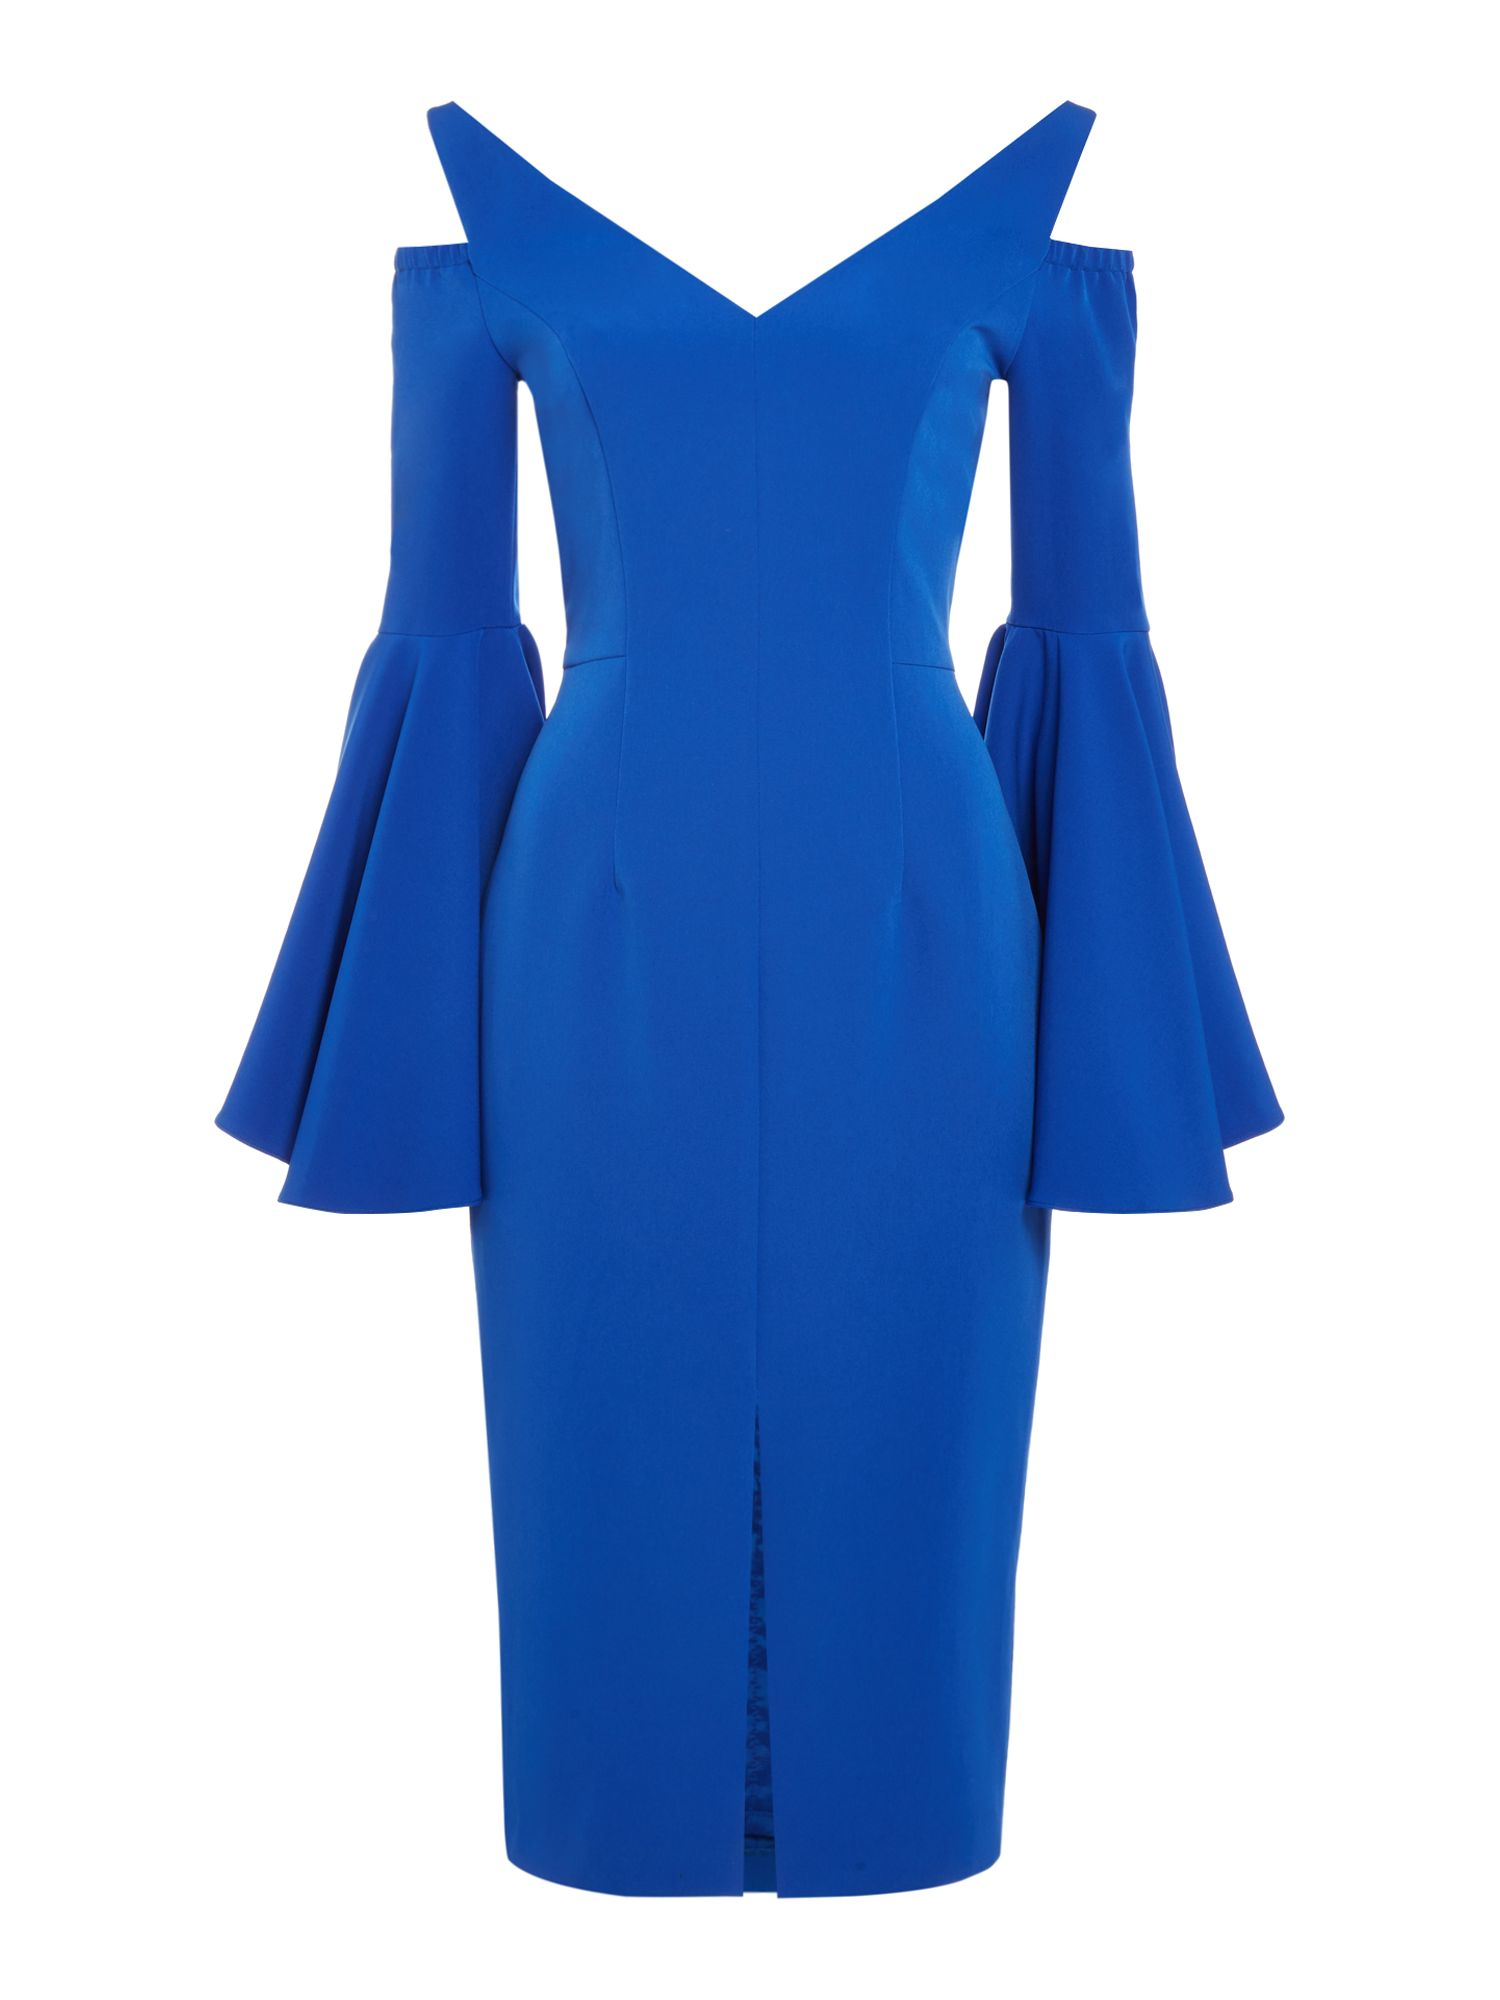 ISSA Sophia Ruffle Dress, Blue